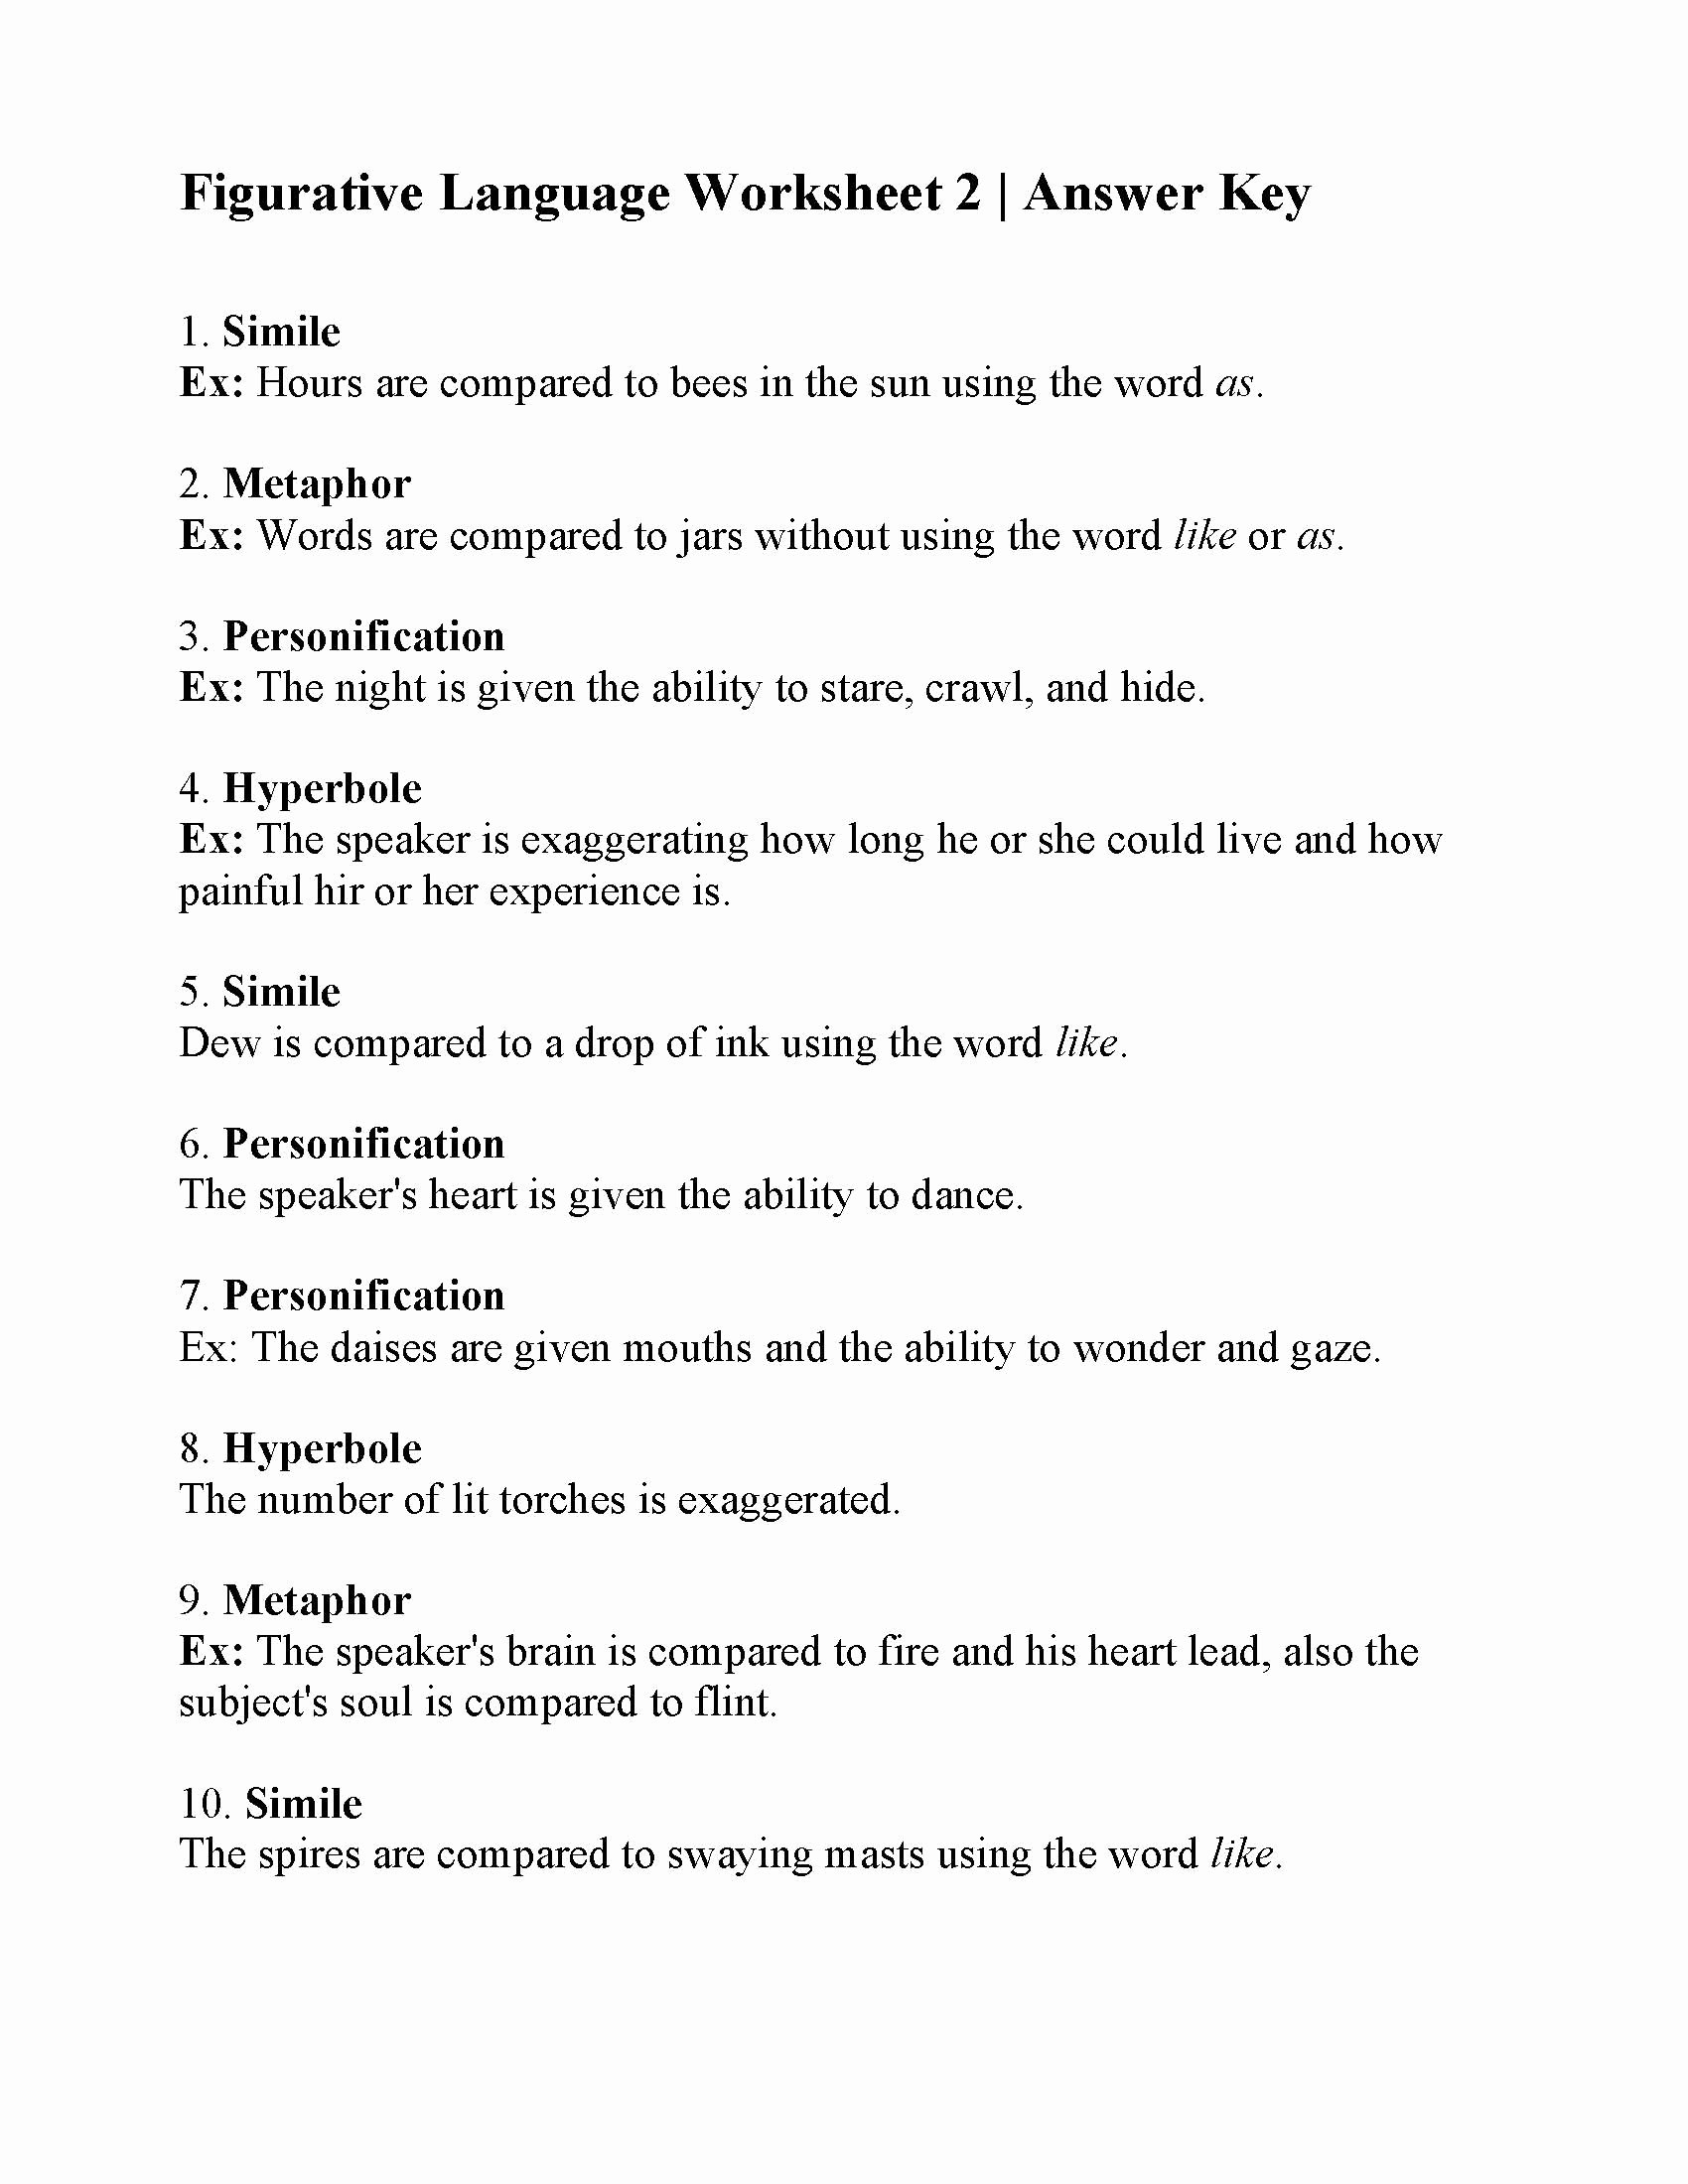 Figurative Language Worksheet 2 Answers New Figurative Language Worksheet 2